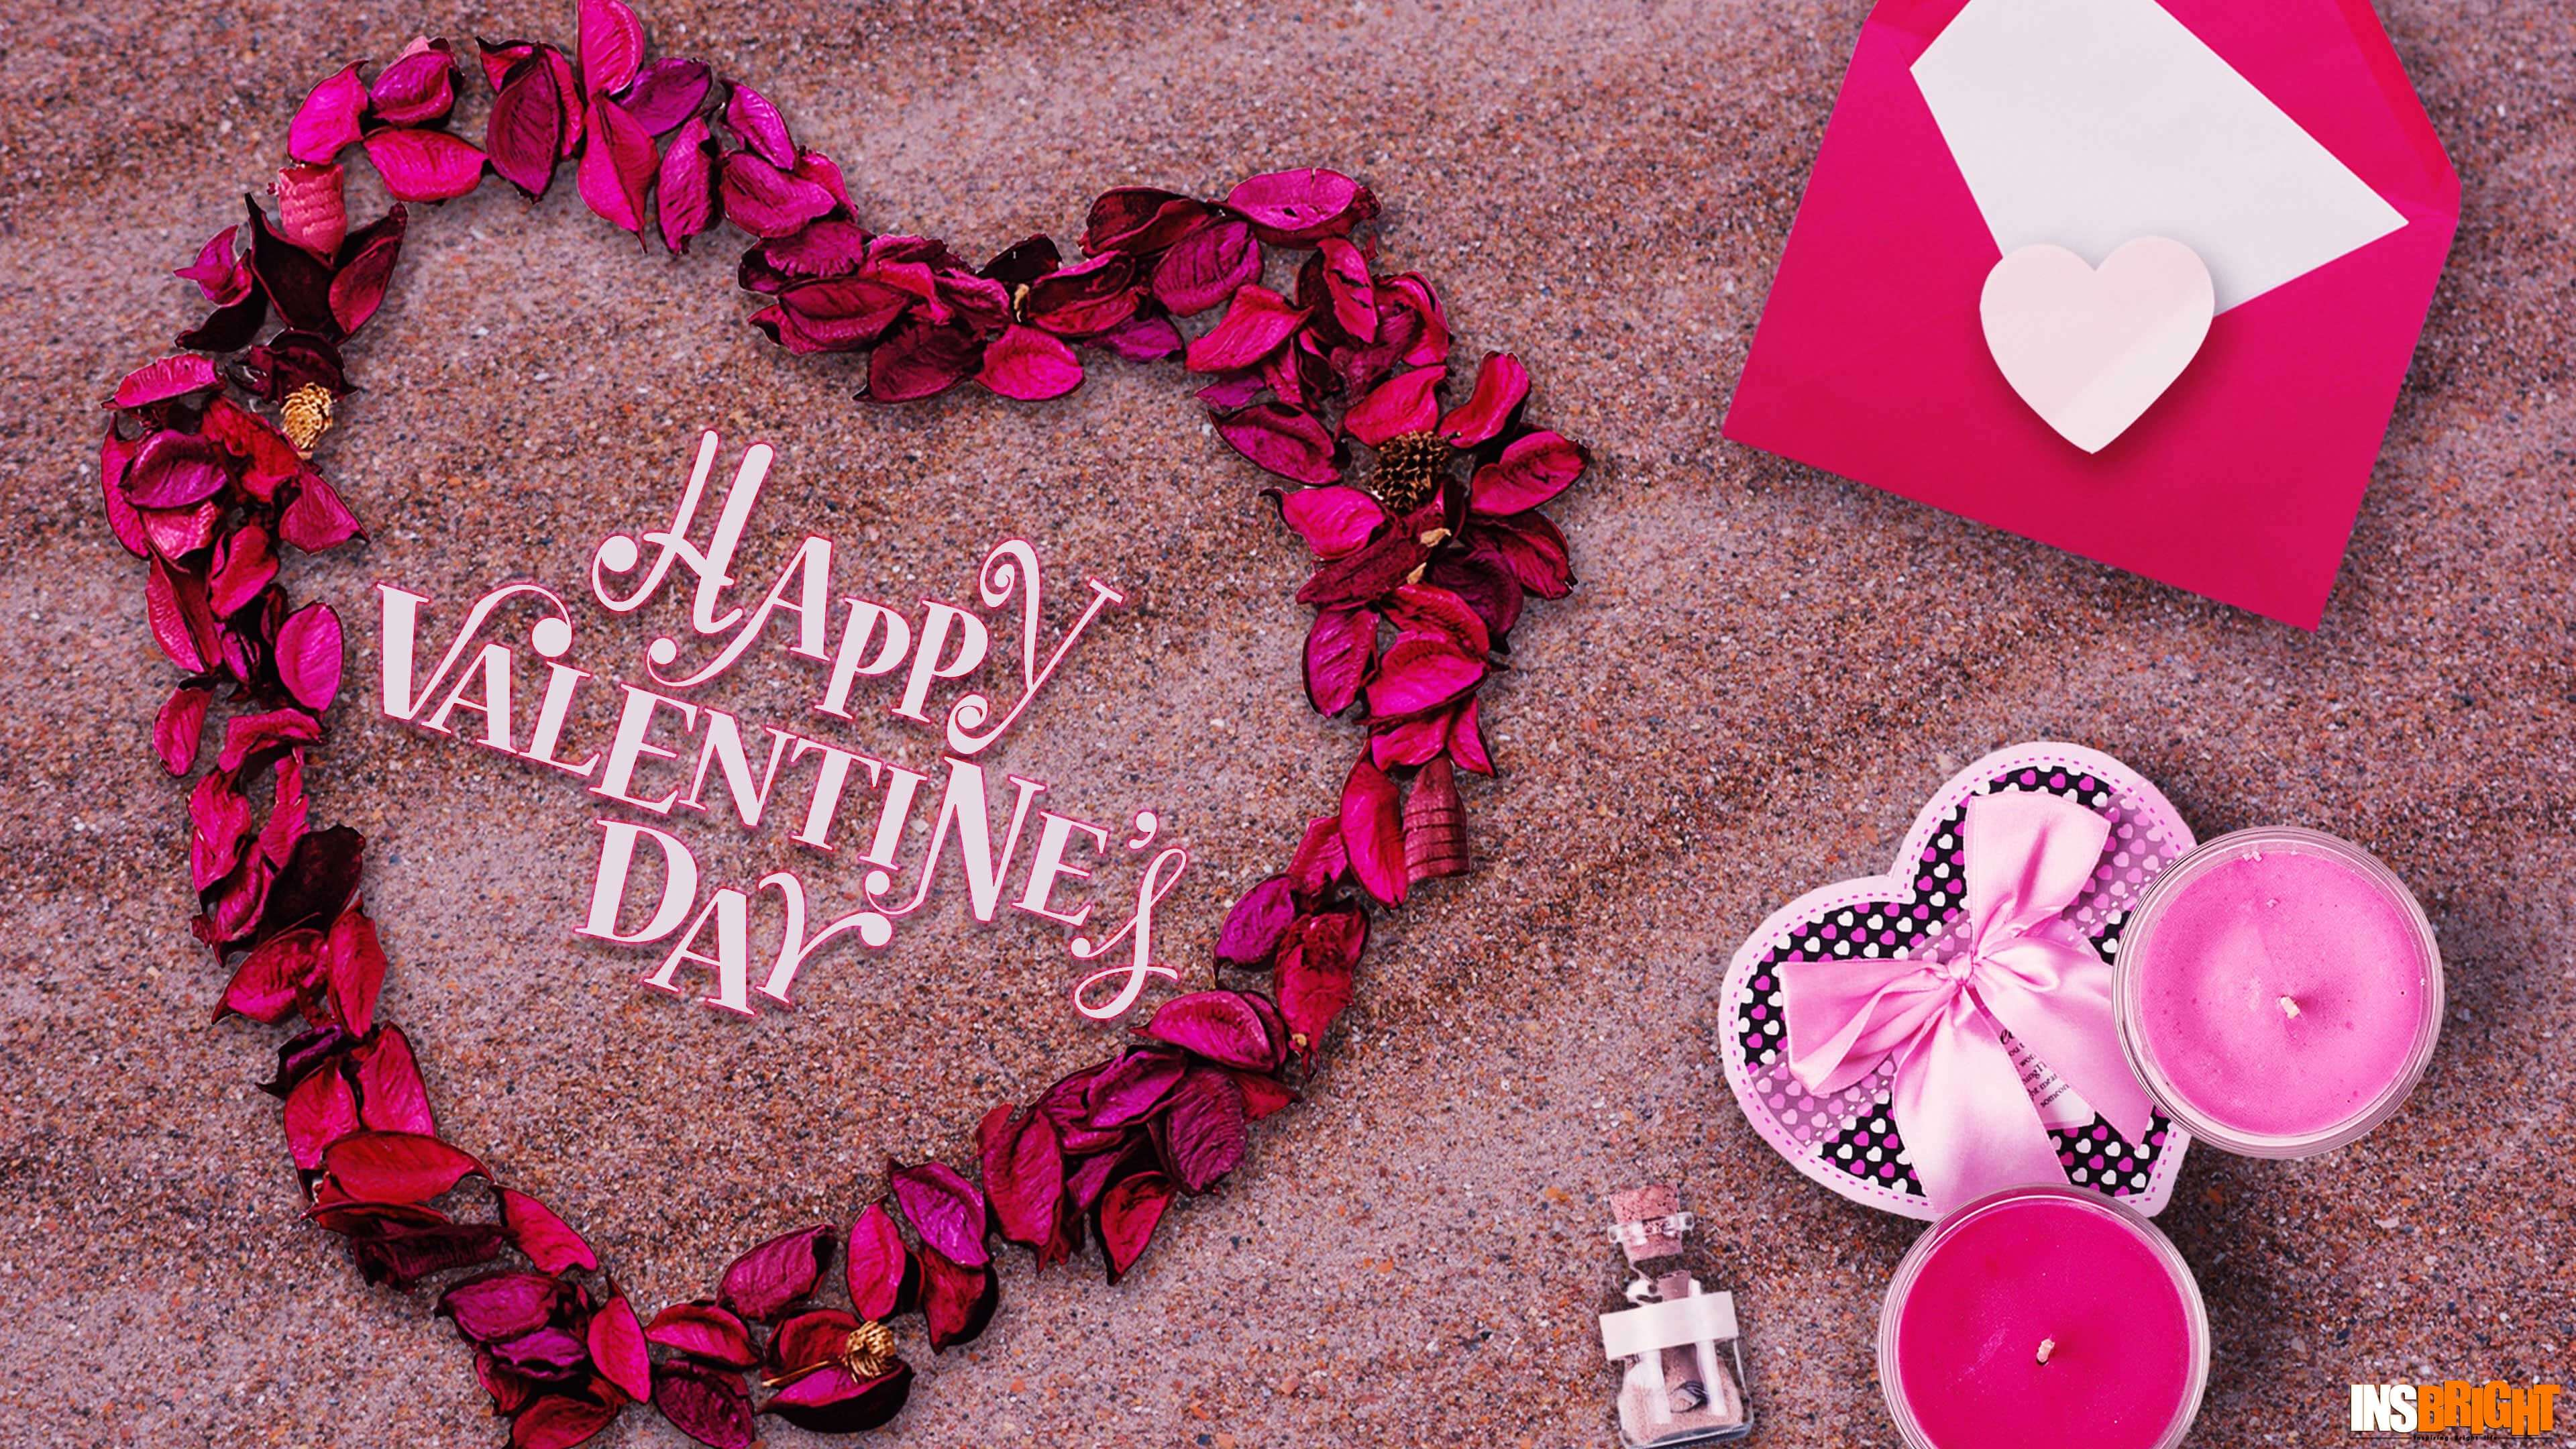 free download hd valentine's day wallpapers 2017 |happy valentine